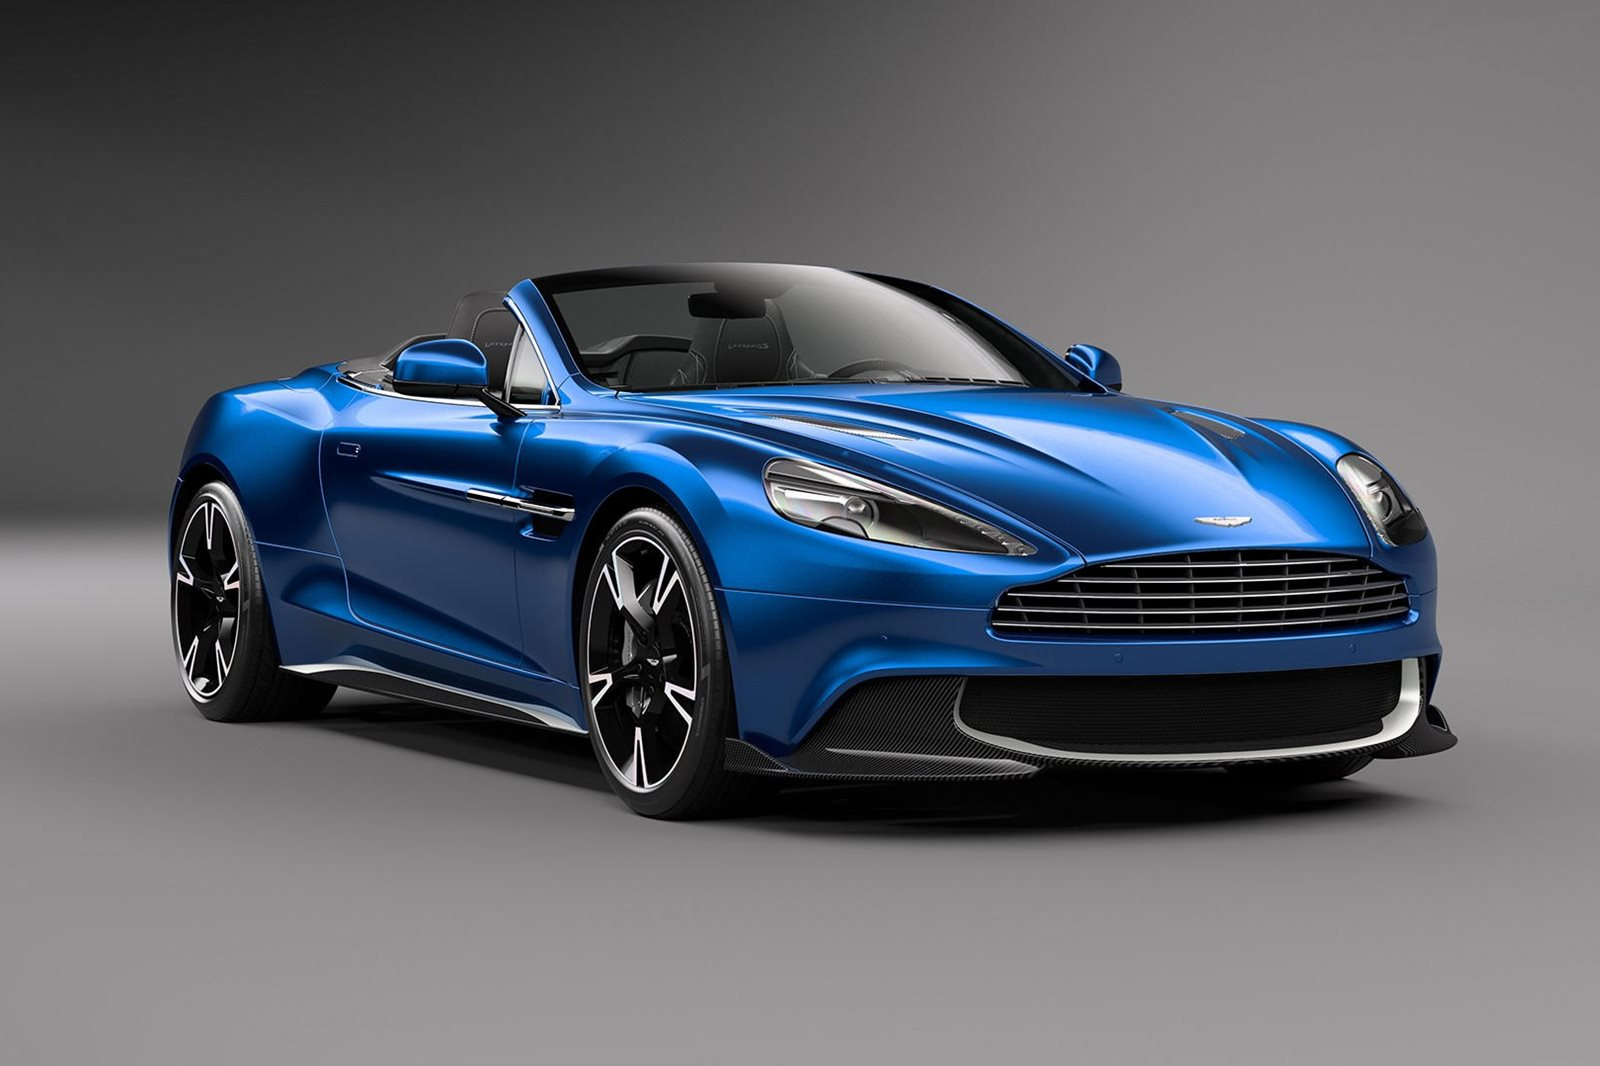 Aston Martin Vanquish S Volante Review Trims Specs And Price - Aston martin volante